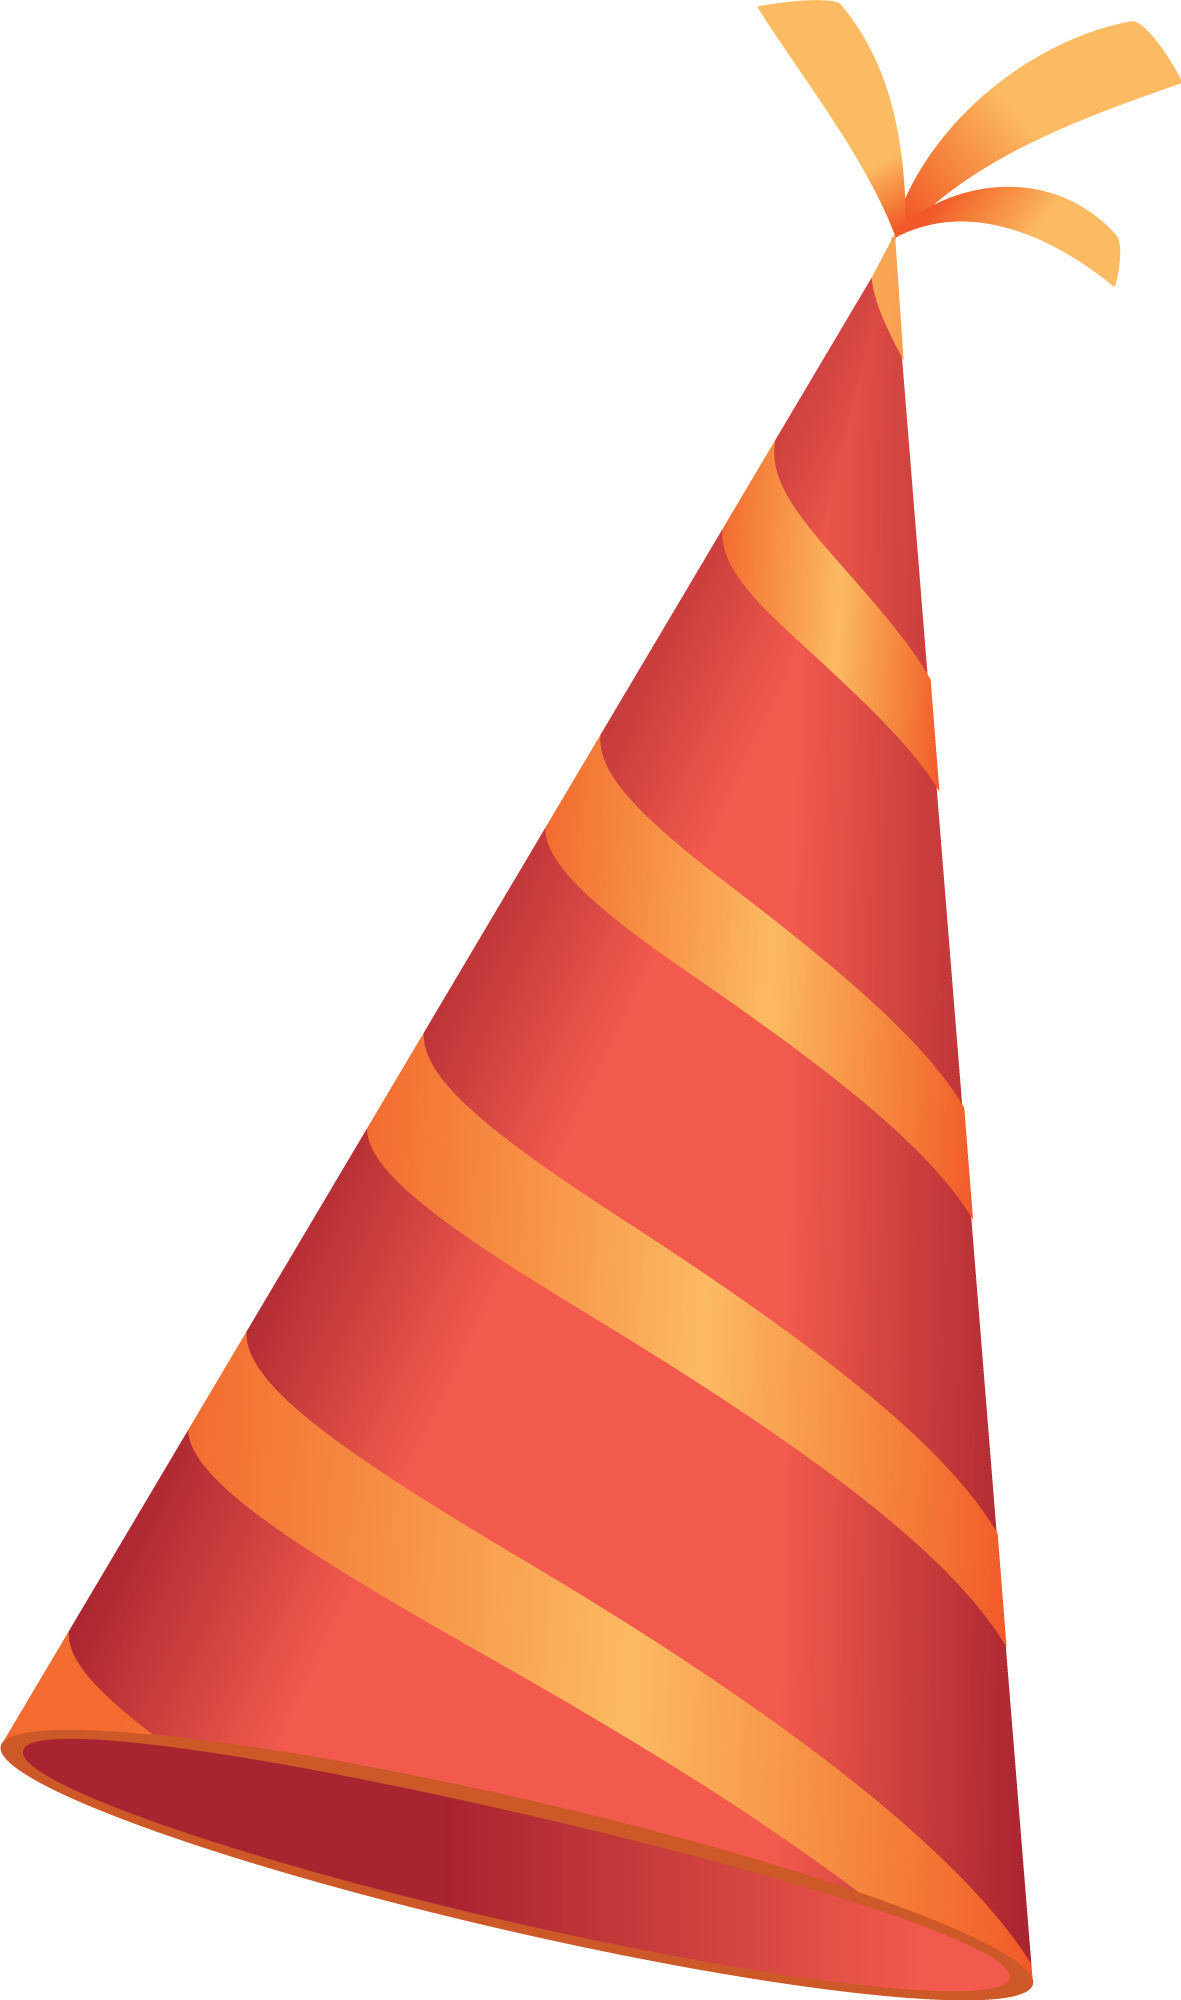 Birthday Hat Png image #20296 - Birthday Hat PNG